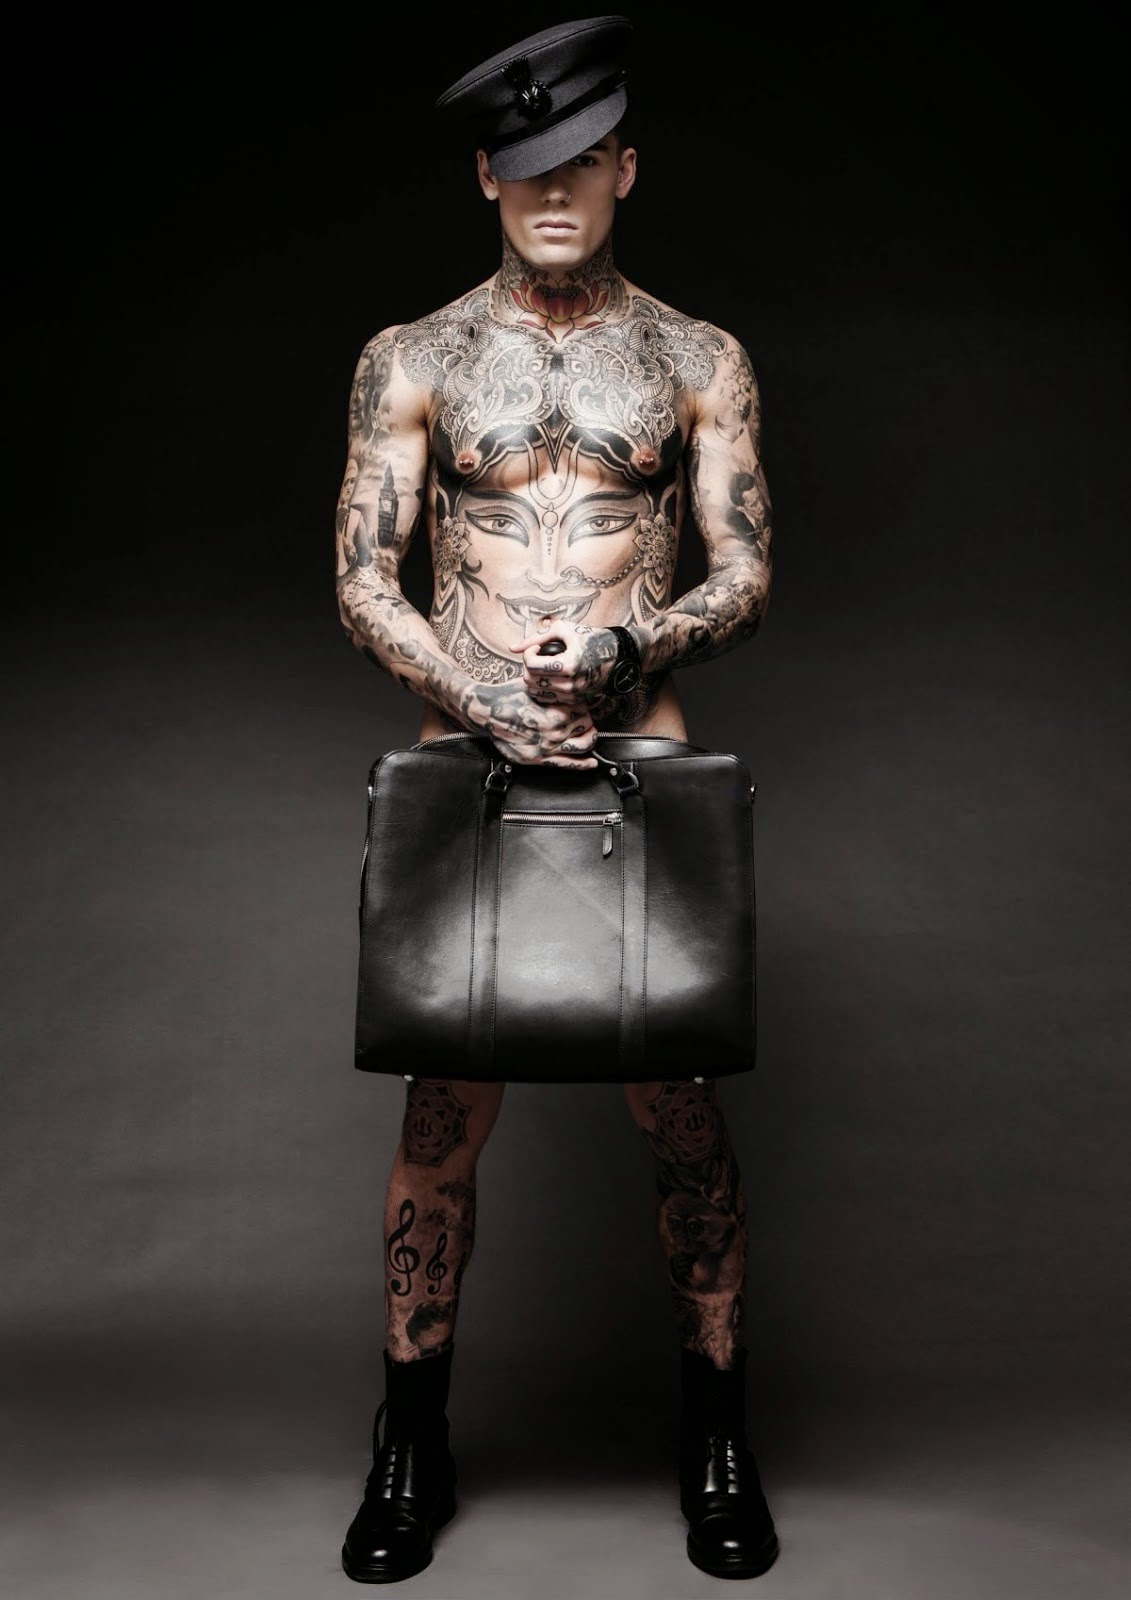 stephen james by darren black for hedonist